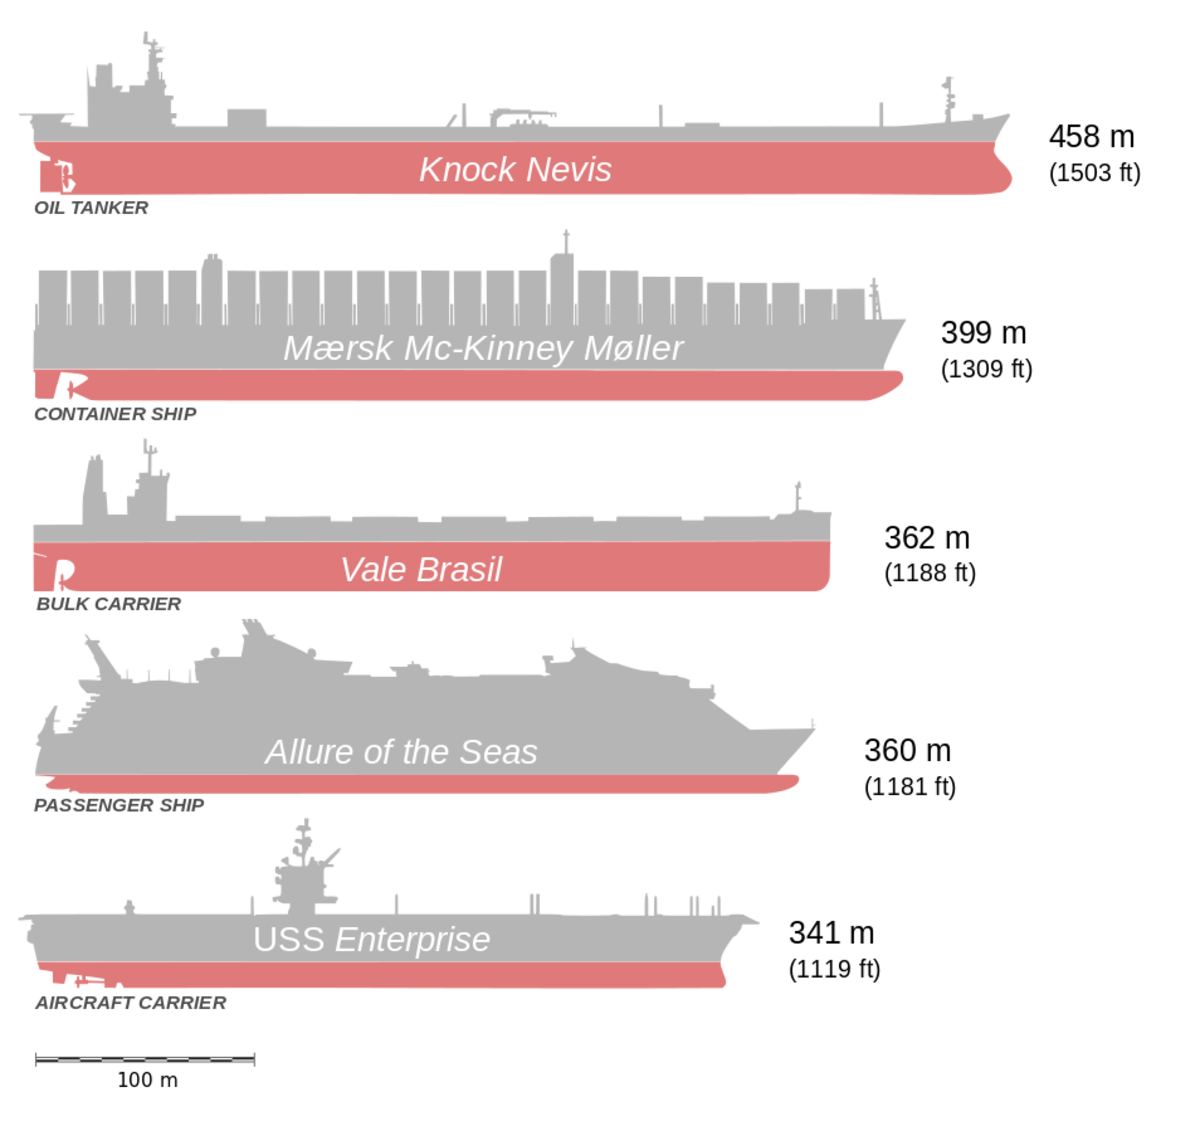 Length Comparison between OOCL Ships and Other Longest Ships